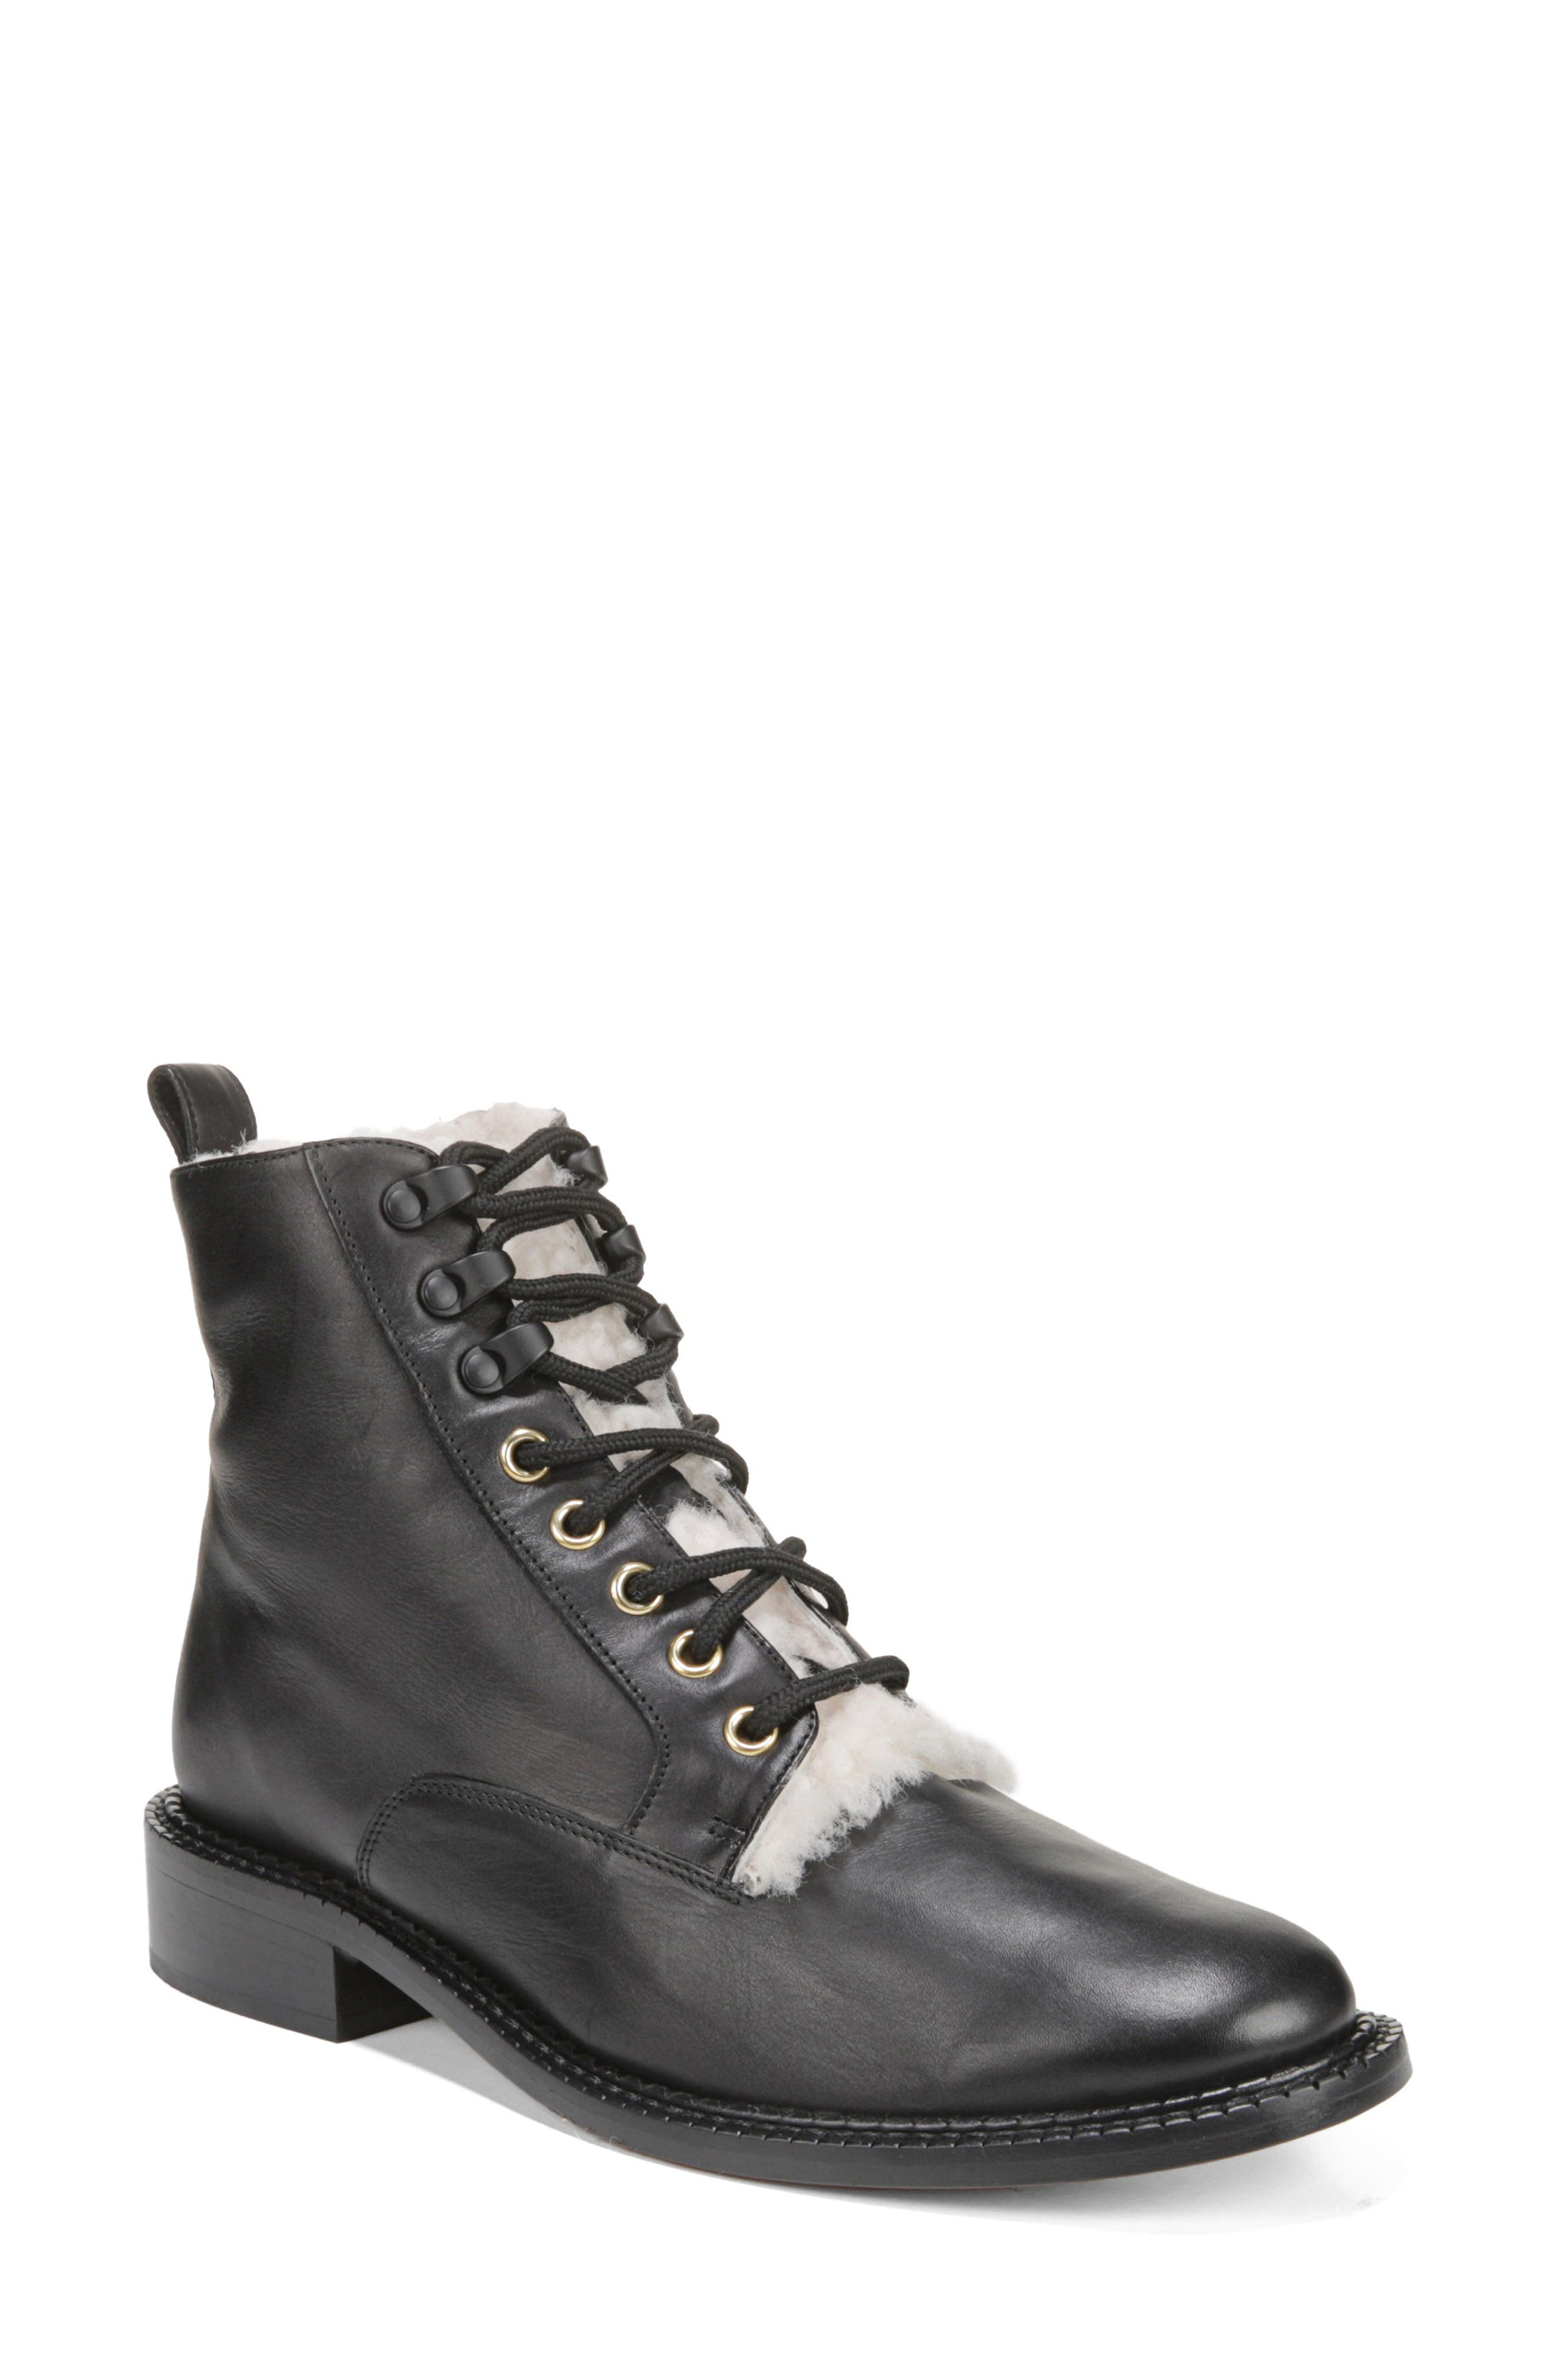 History of Victorian Boots & Shoes for Women Womens Vince Cabria 3 Genuine Shearling Lined Combat Boot Size 9.5 M - Black $450.00 AT vintagedancer.com